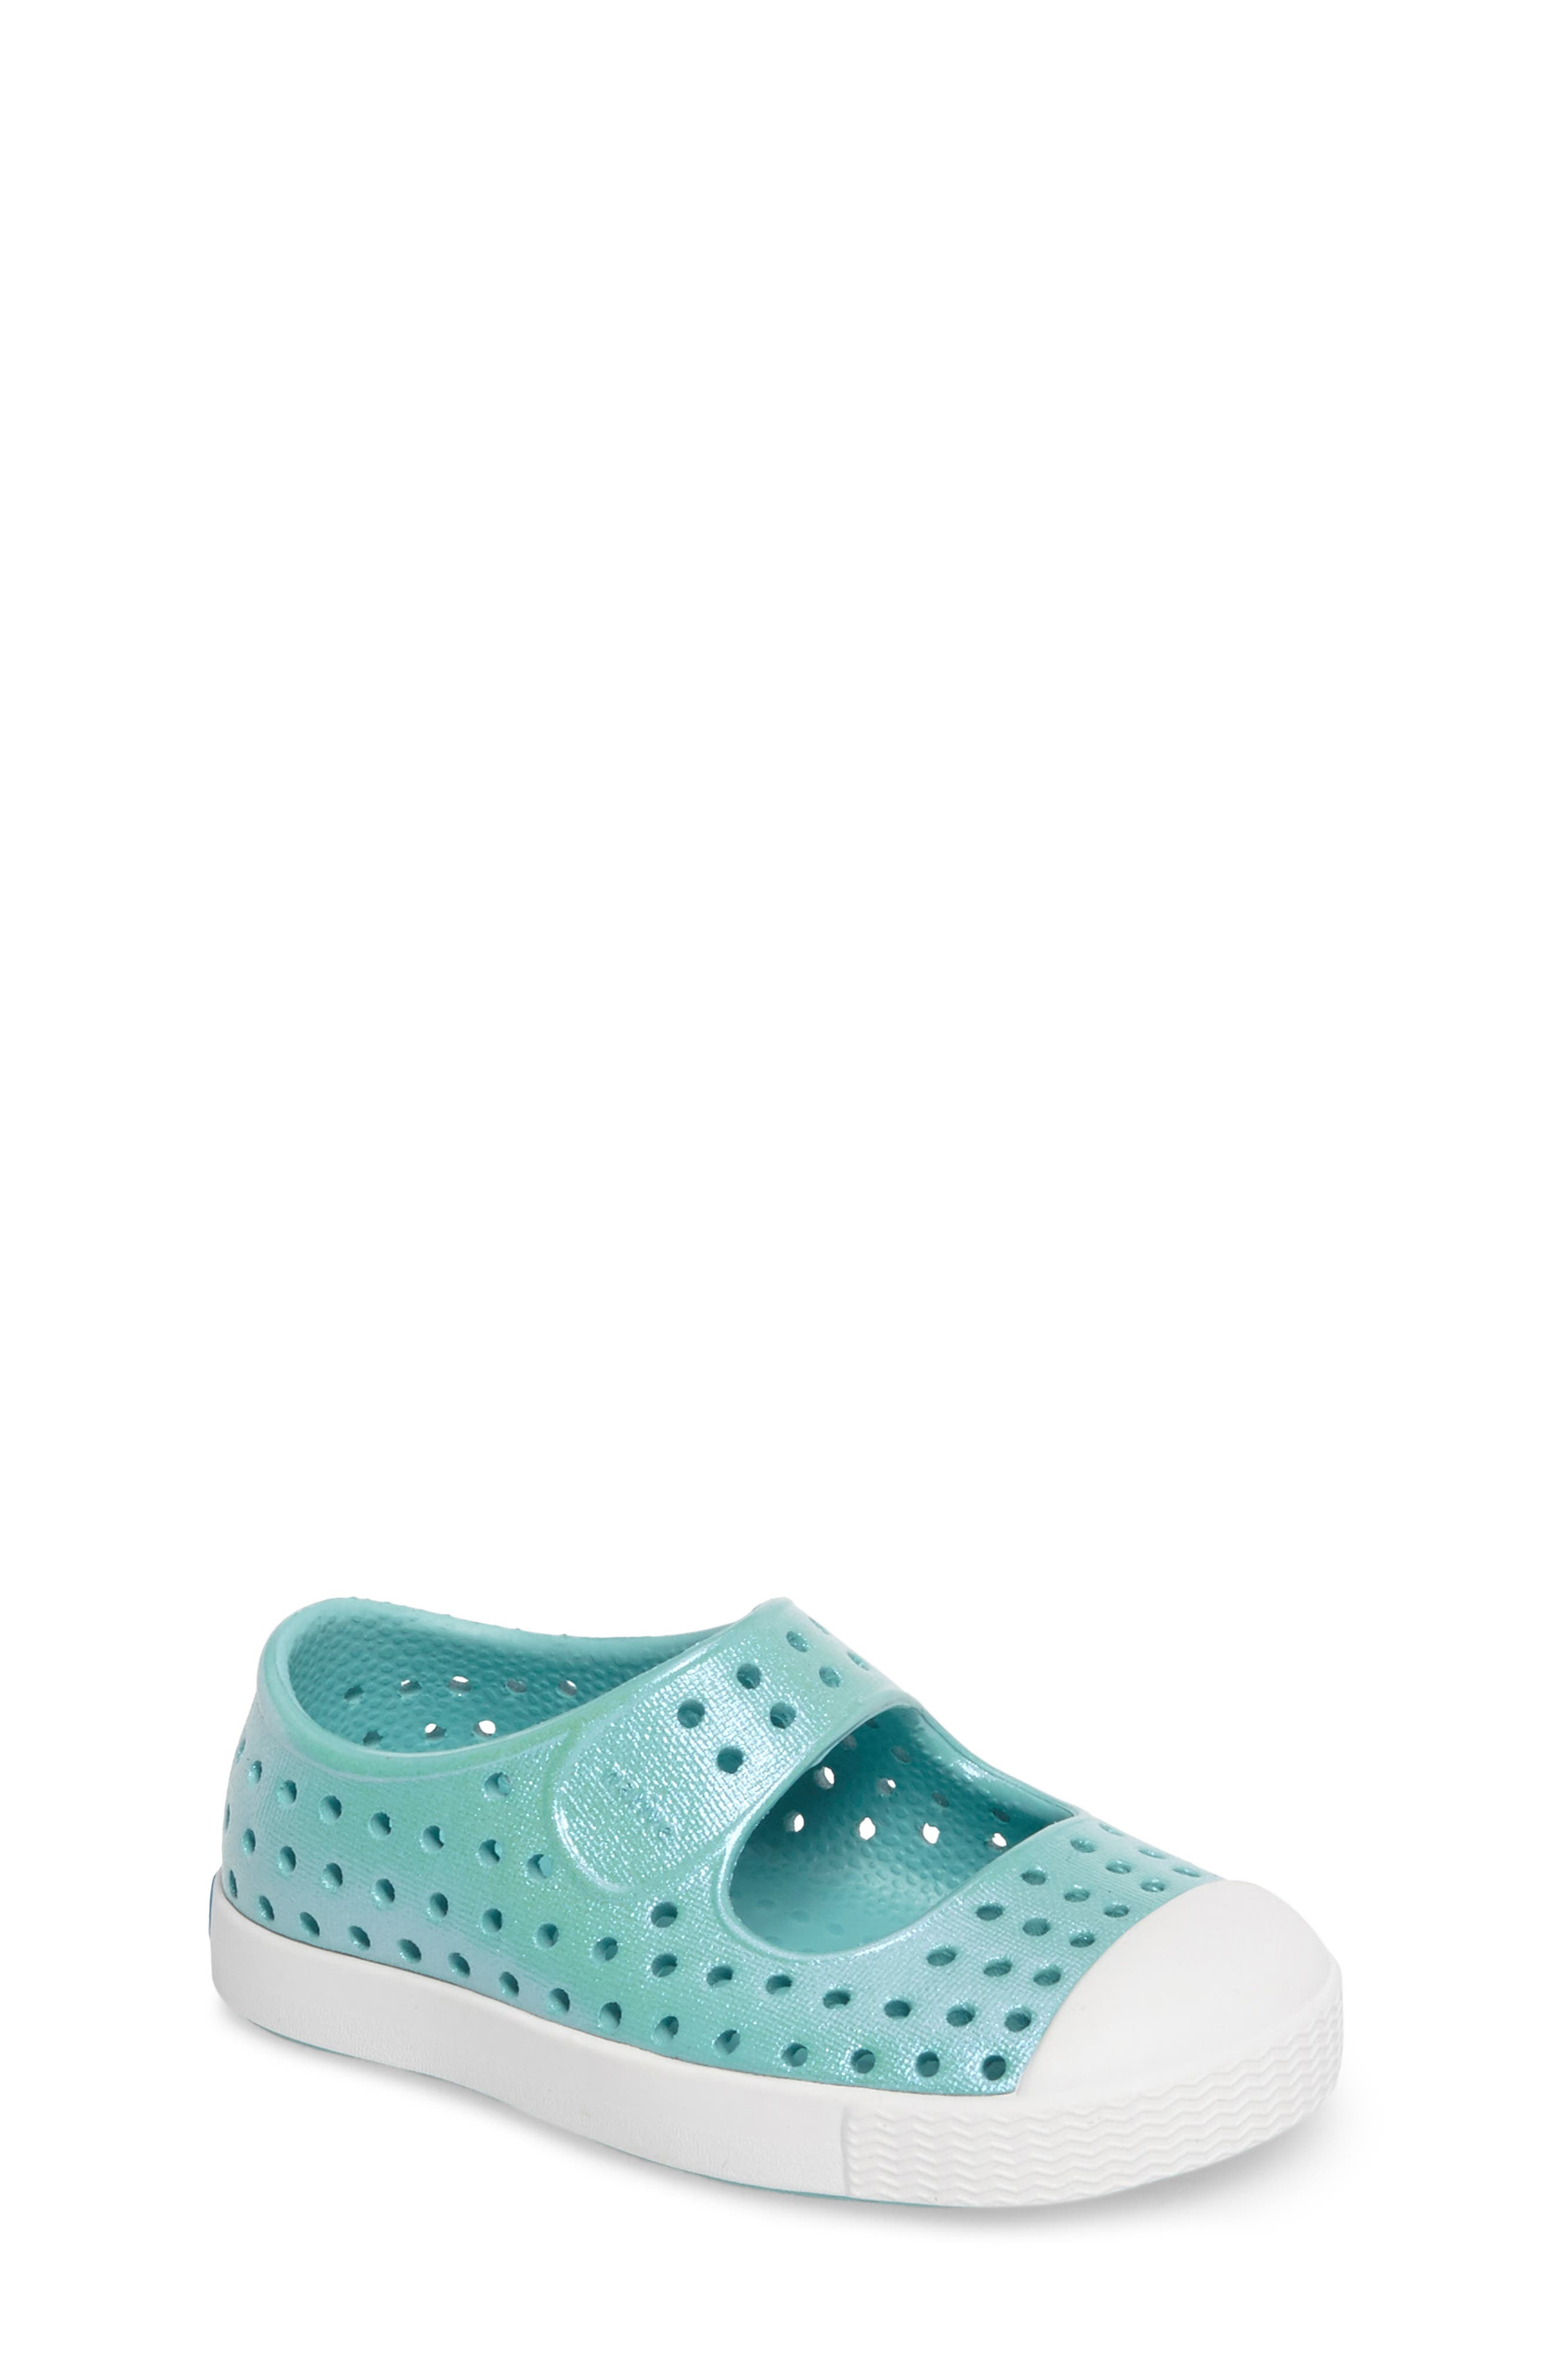 Alternate Image 1 Selected - Native Shoes Juniper Perforated Mary Jane (Baby, Walker, Toddler & Little Kid)